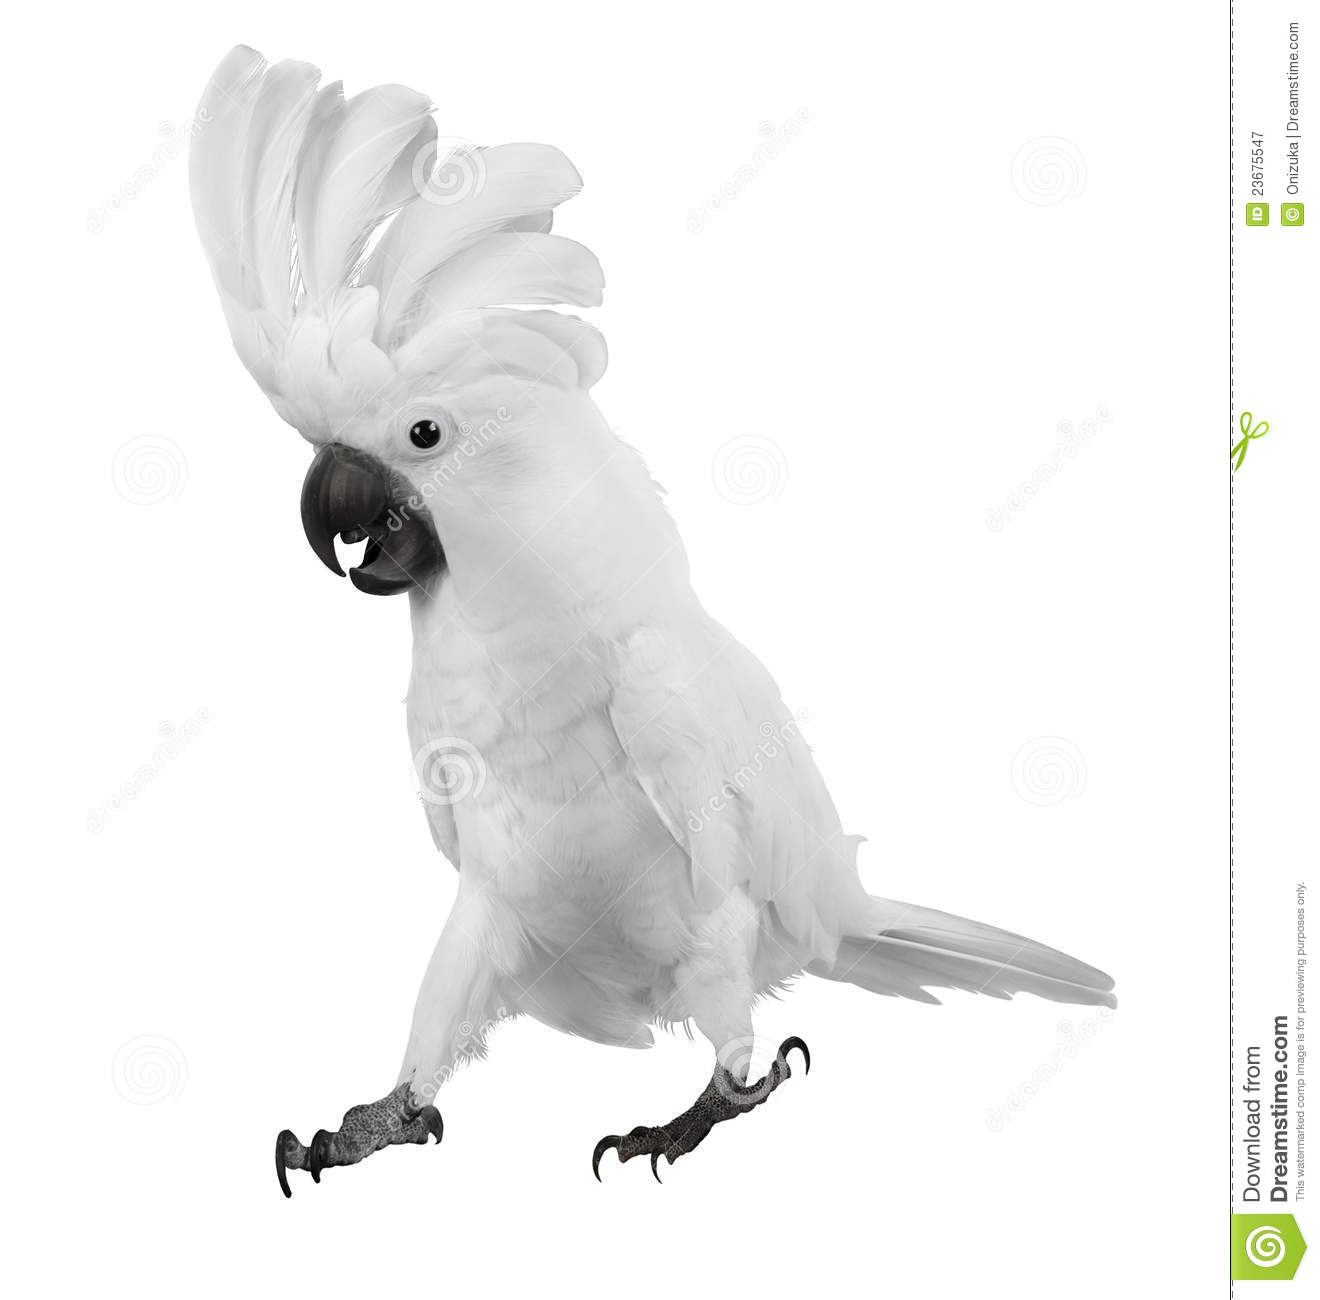 White Parrot Royalty Free Stock Photography - Image: 23675547